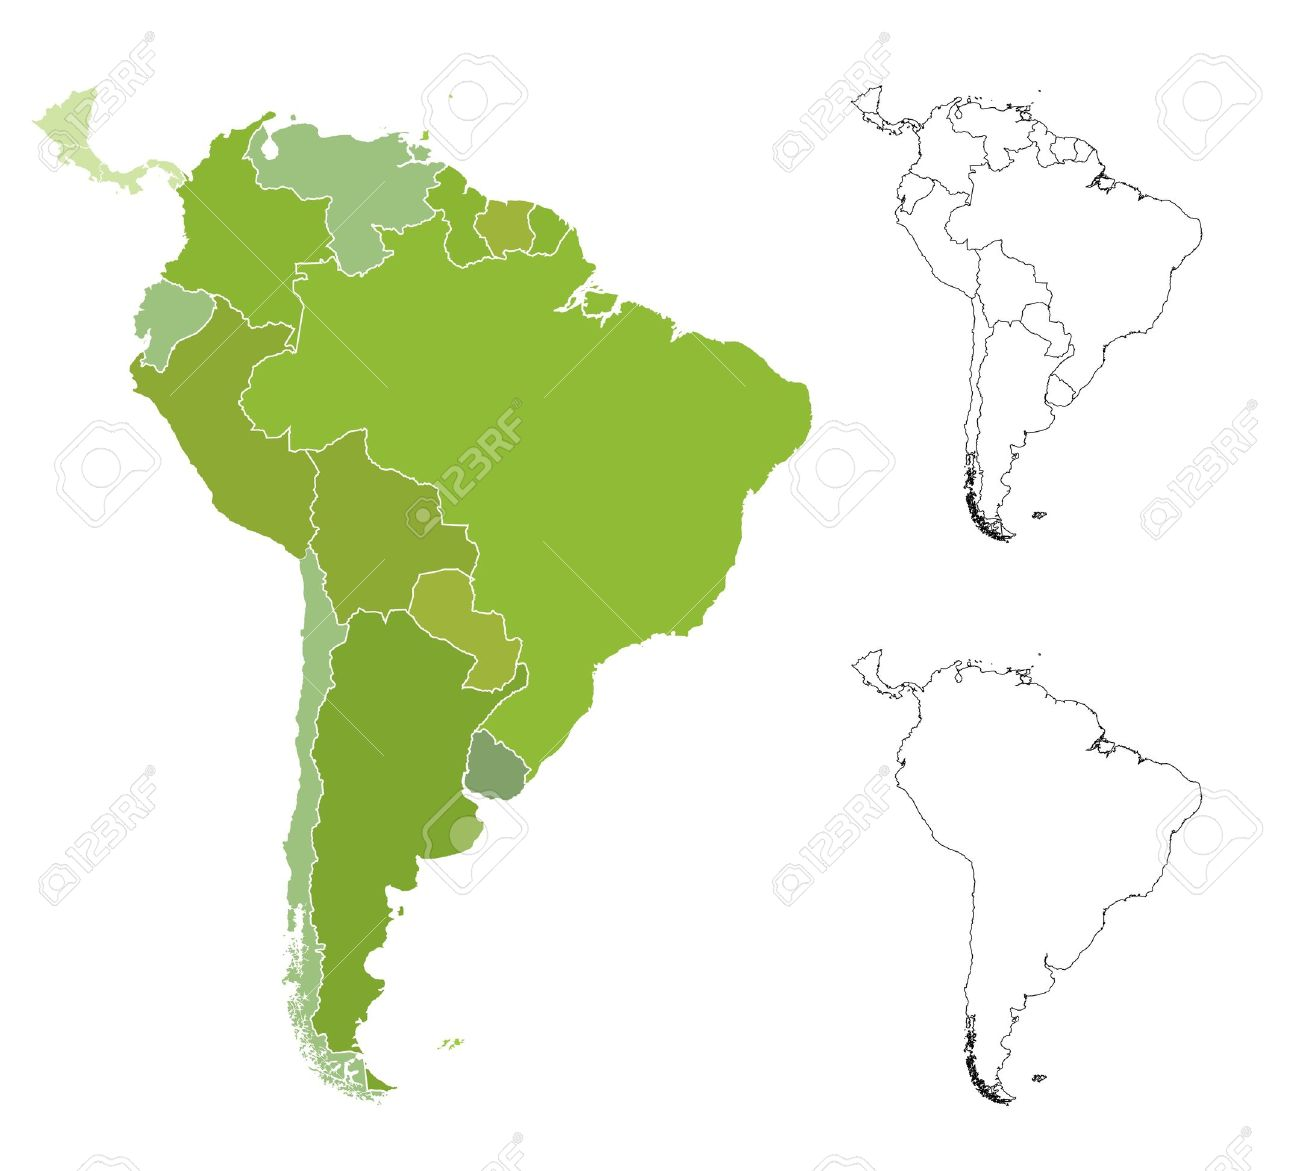 highly detailed map of the south american countries royalty free